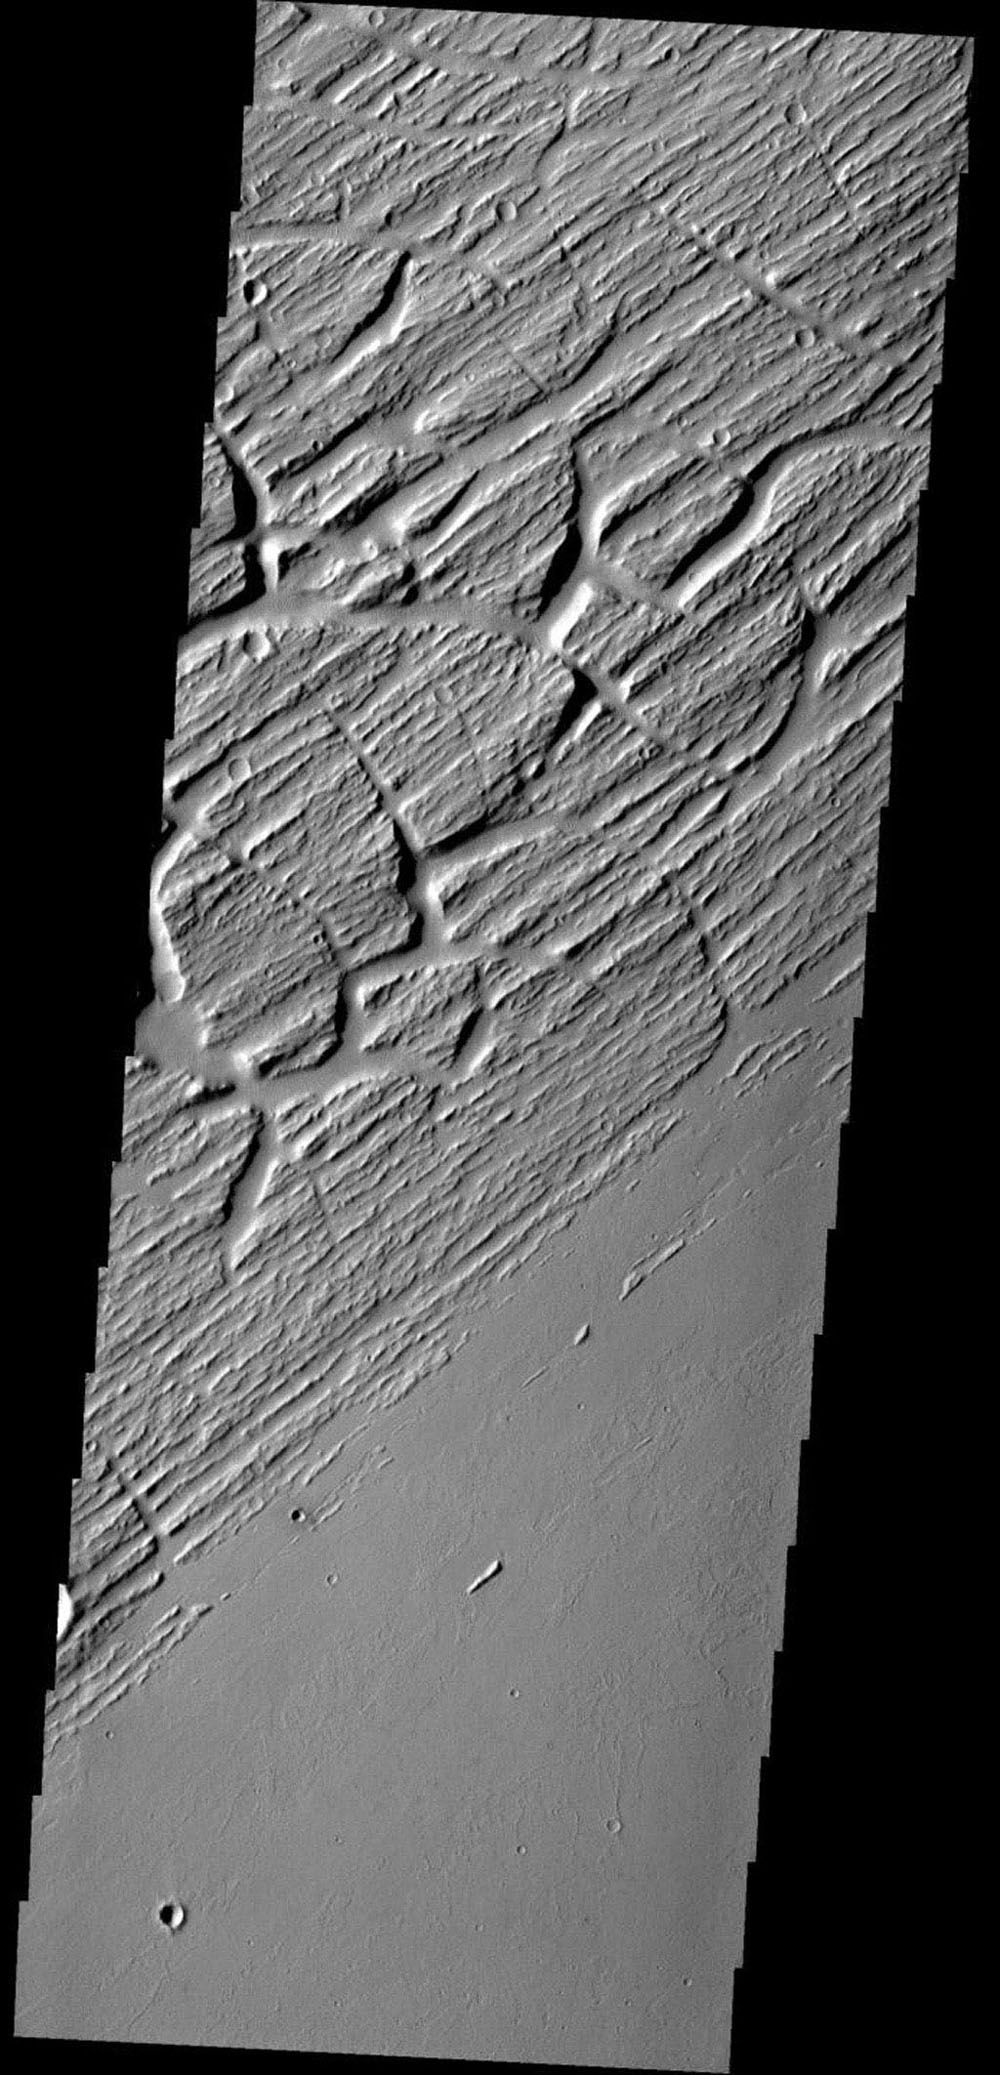 This image shows part of Sacra Sulci, a region of high standing grooves, crosscut by cracks and fractures. Lava flows are present to the south and sand dunes fill the floor of the large cracks on Mars as seen by NASA's Mars Odyssey spacecraft.